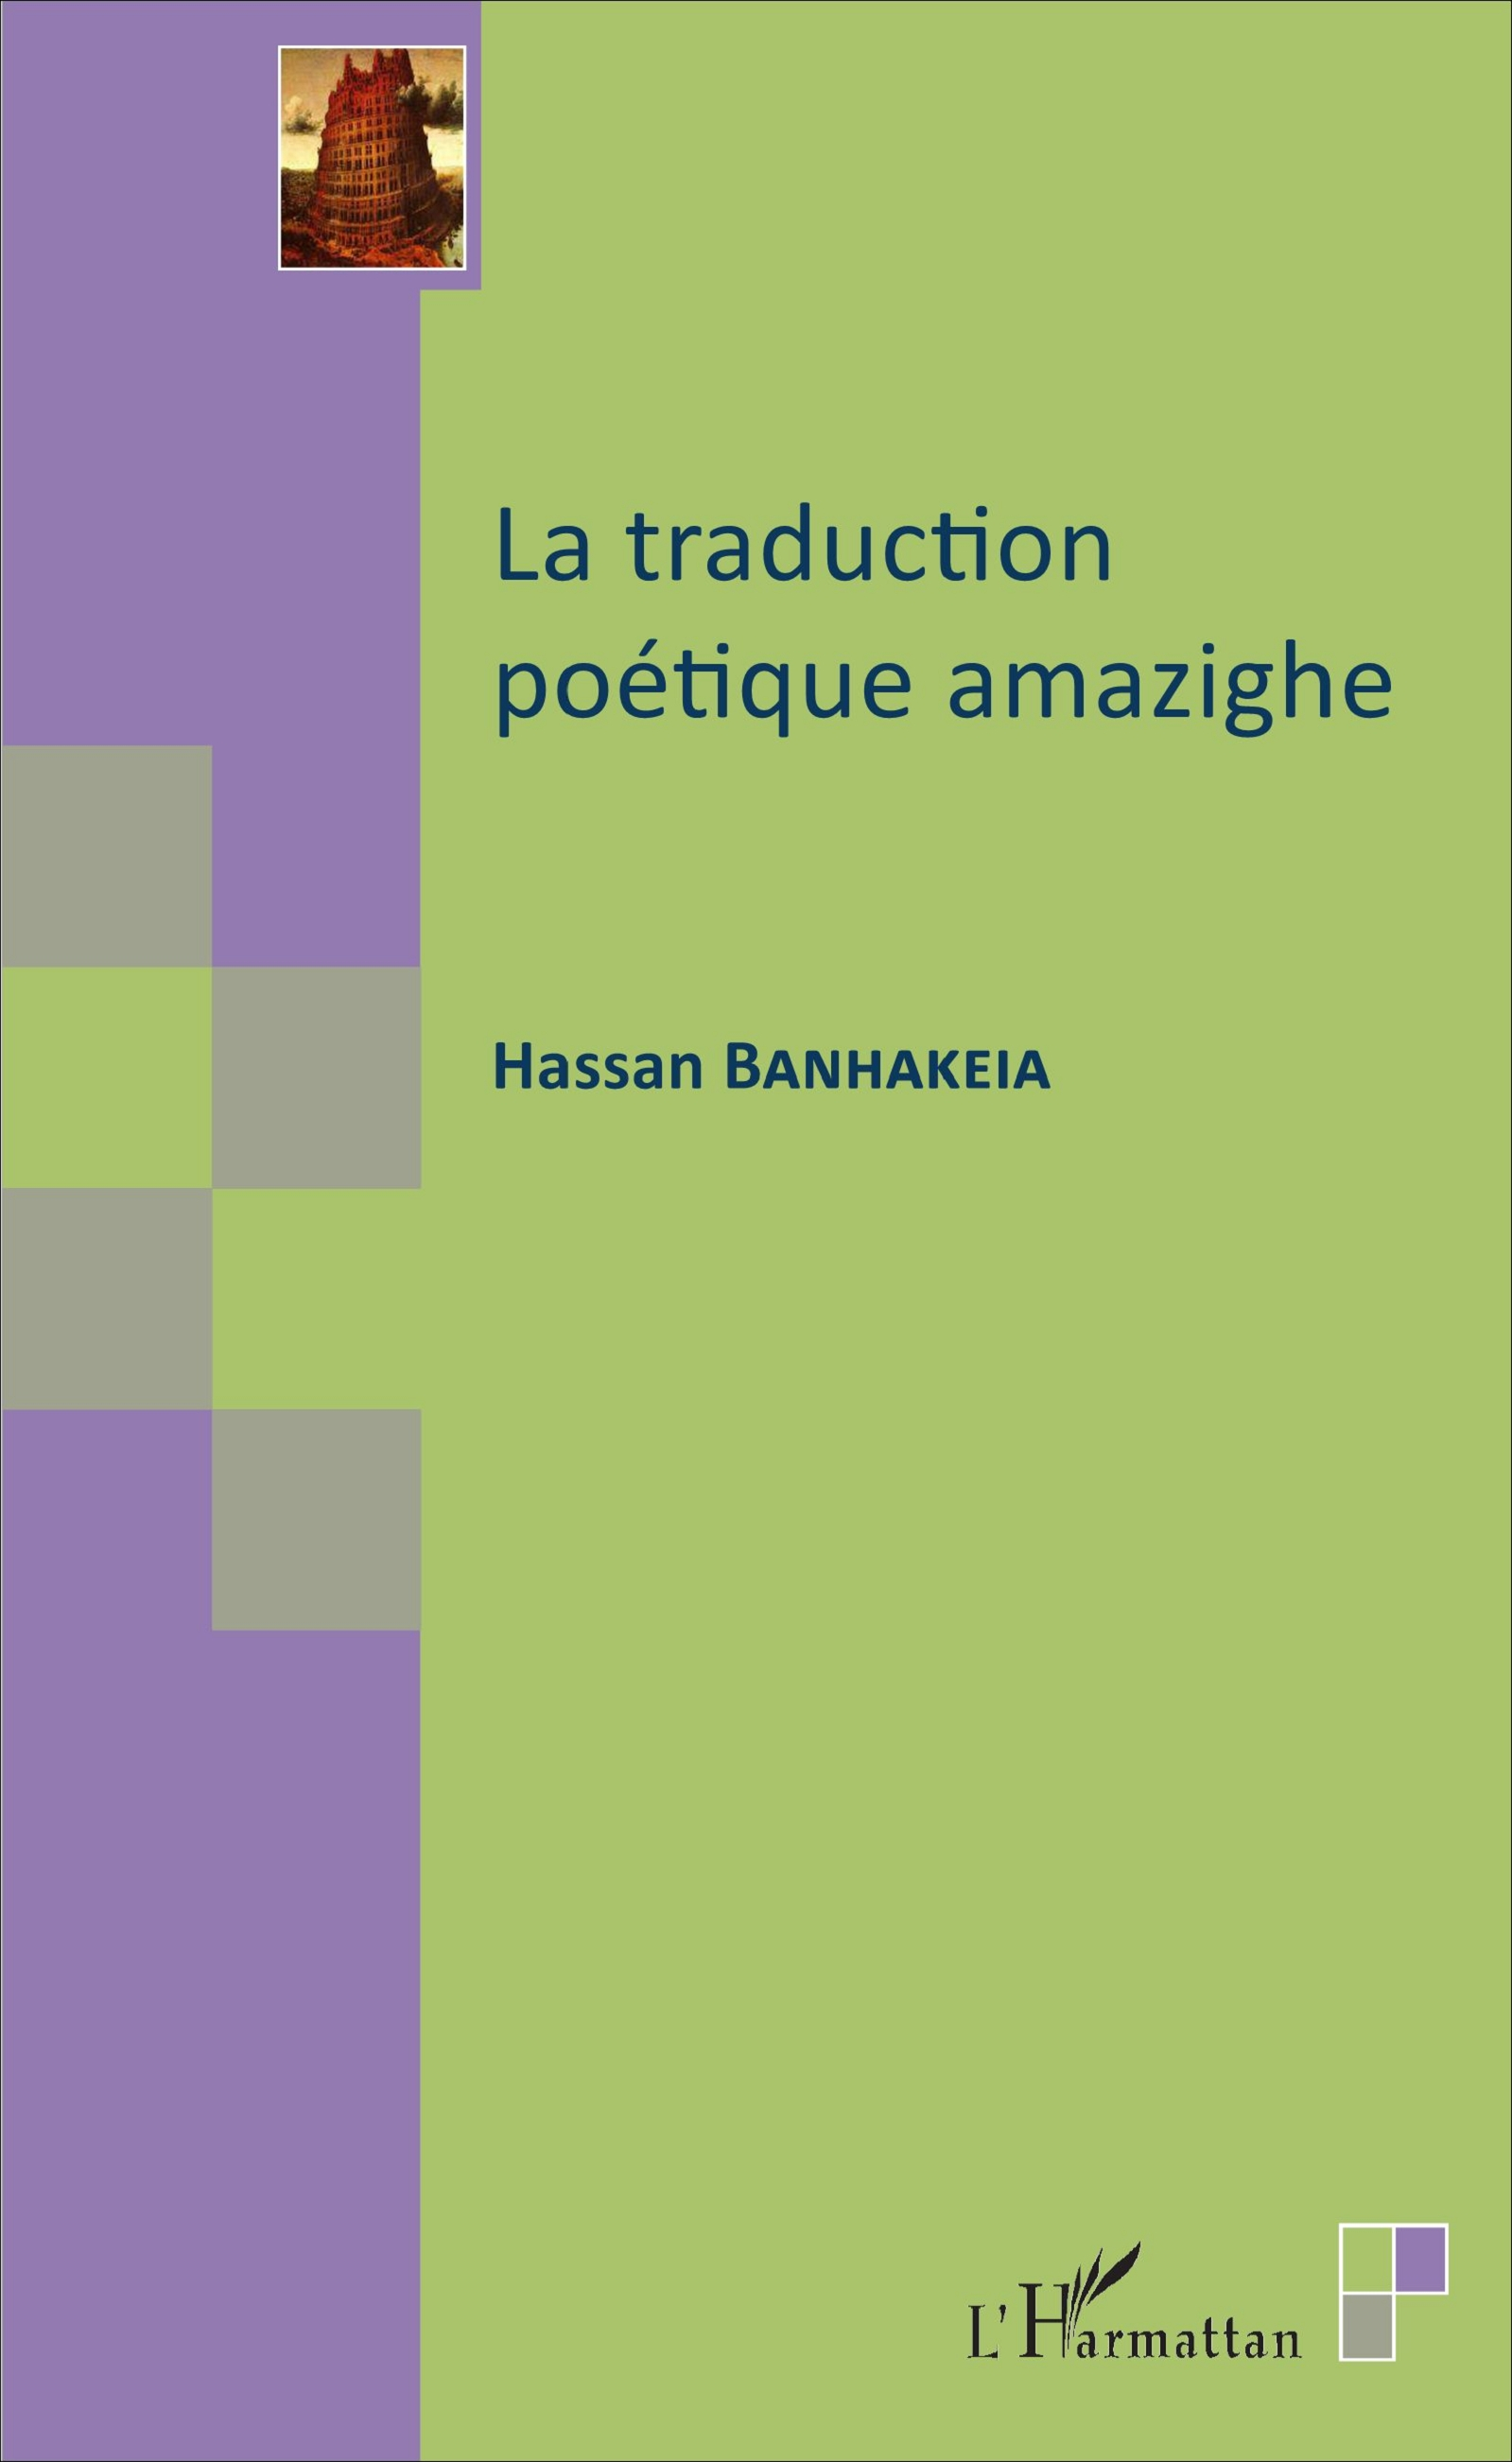 H. Banhakeia, La Traduction poétique amazighe